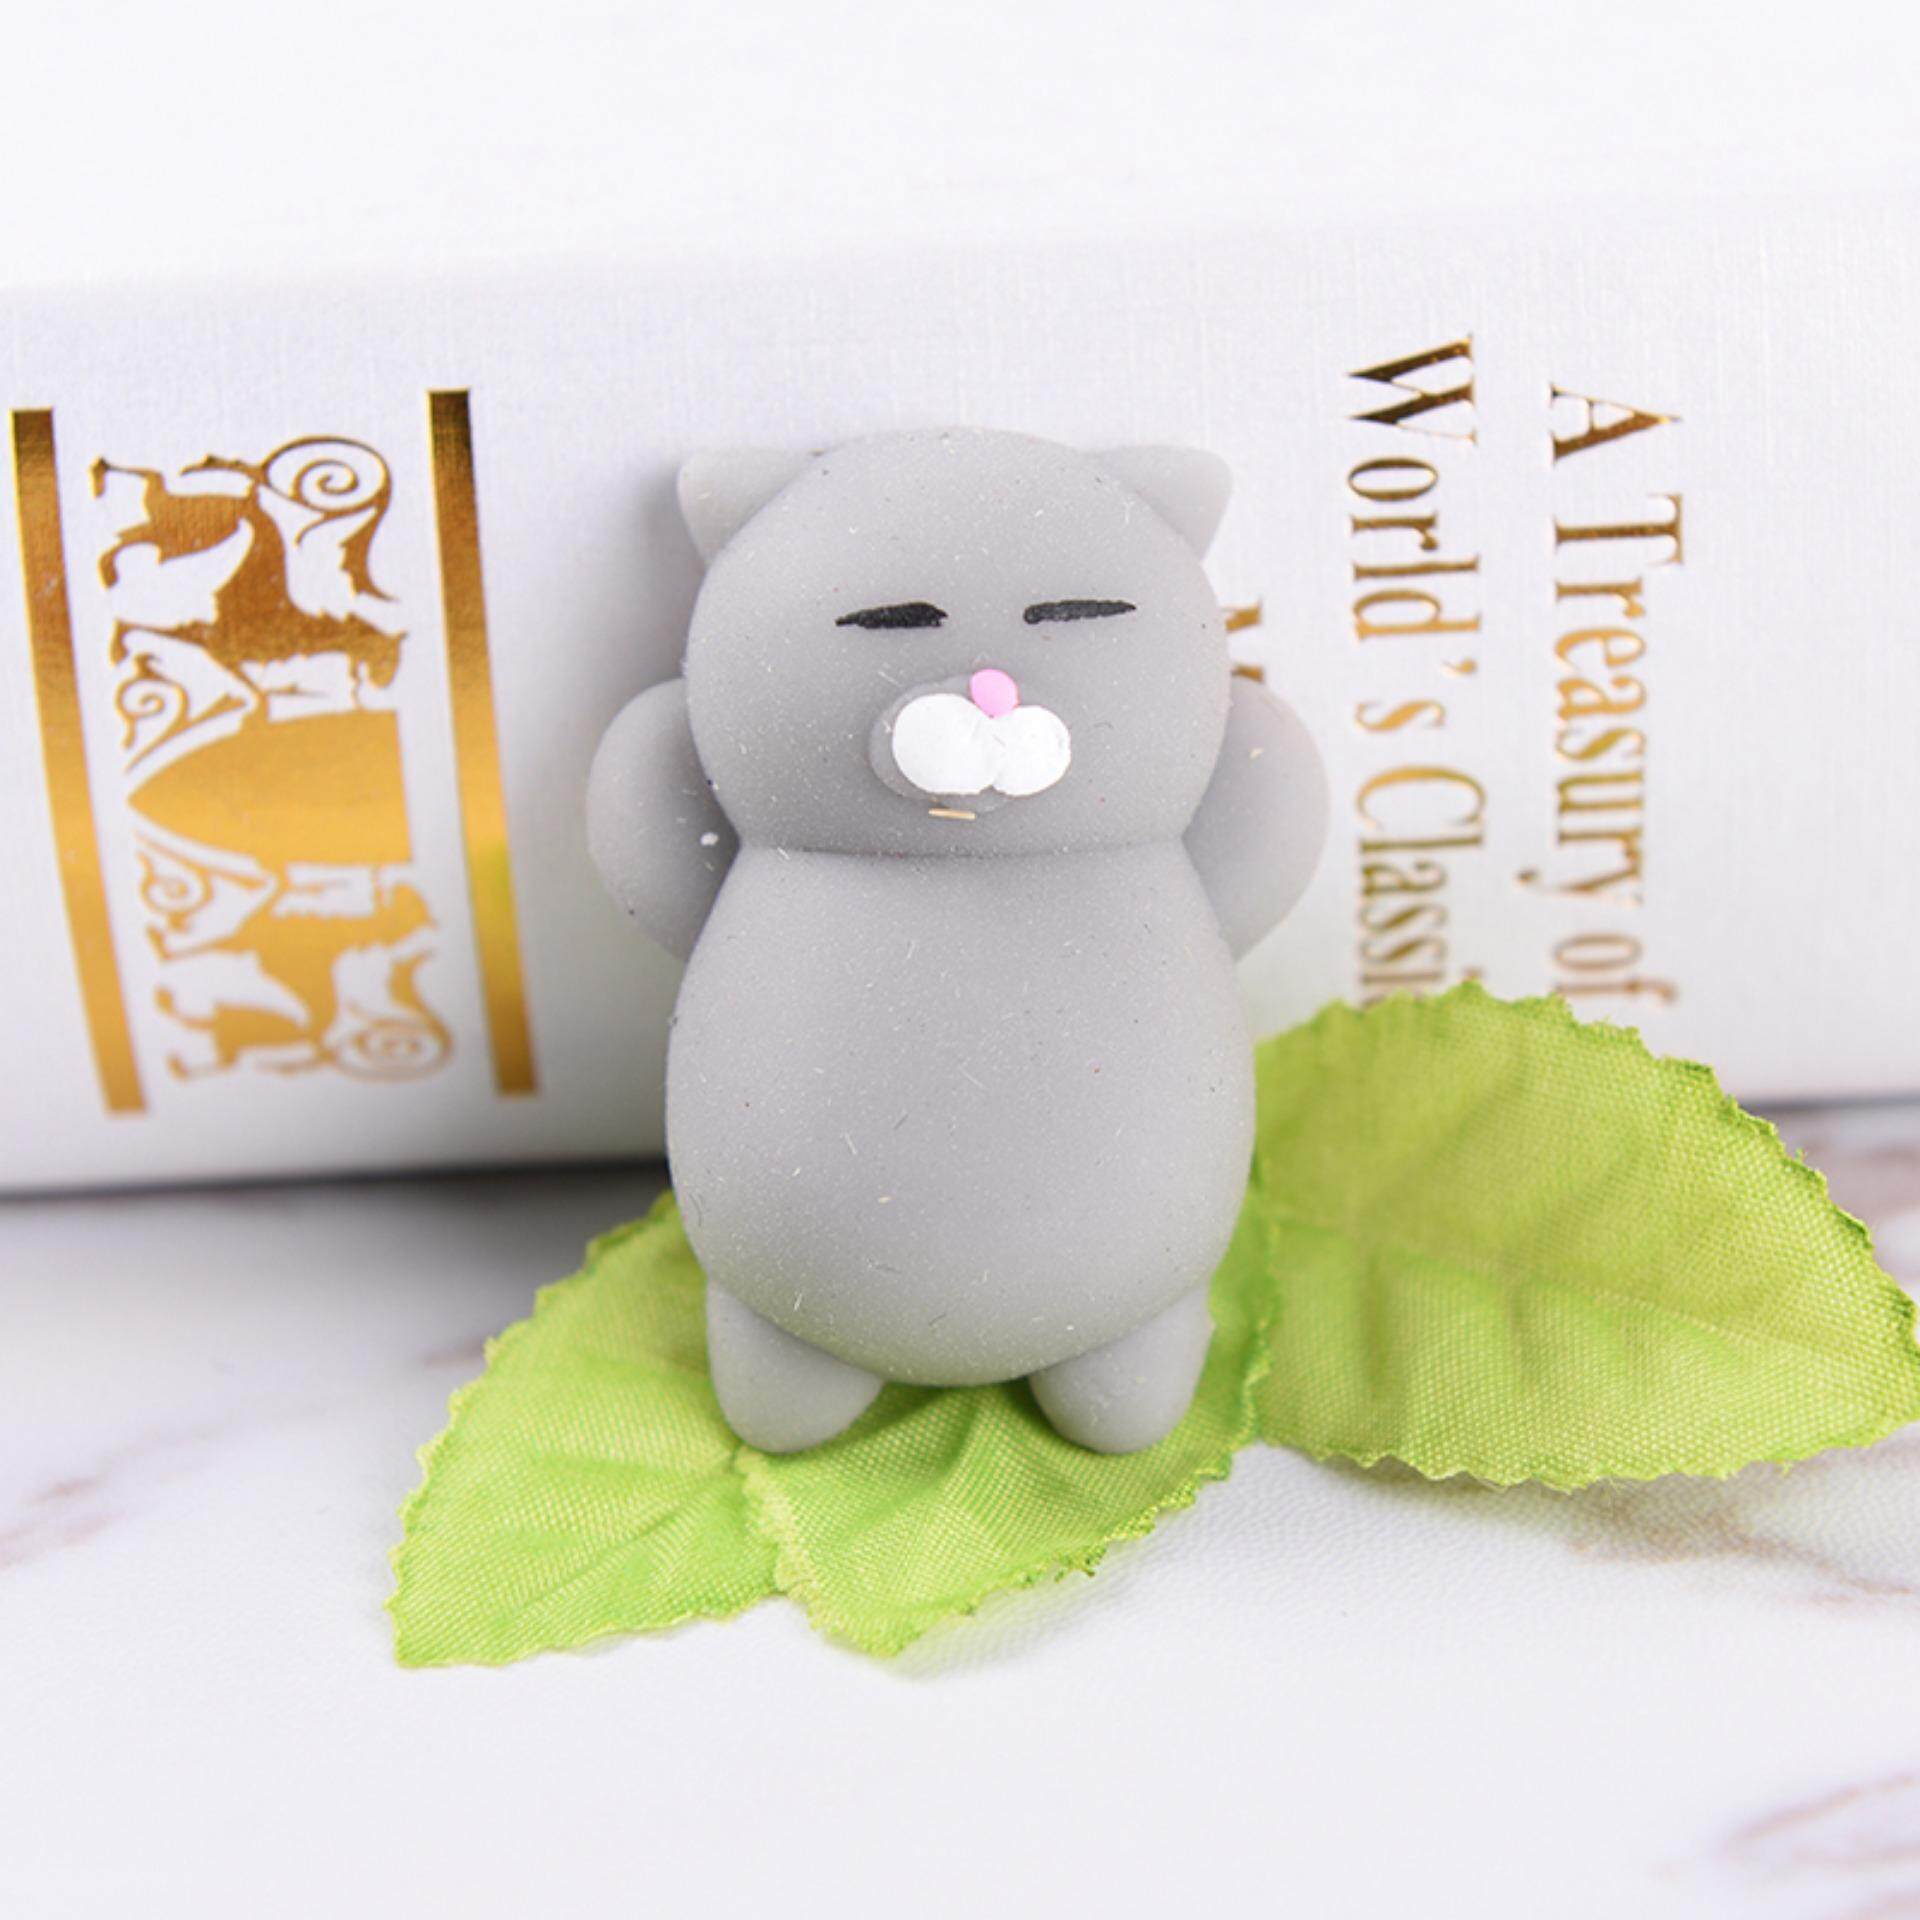 Buy Sell Cheapest Kawaii Expression Bun Best Quality Product Deals Squishy Kucing Cute Cat Ball Soft Bread Cell Phone Straps Key Chains Grey